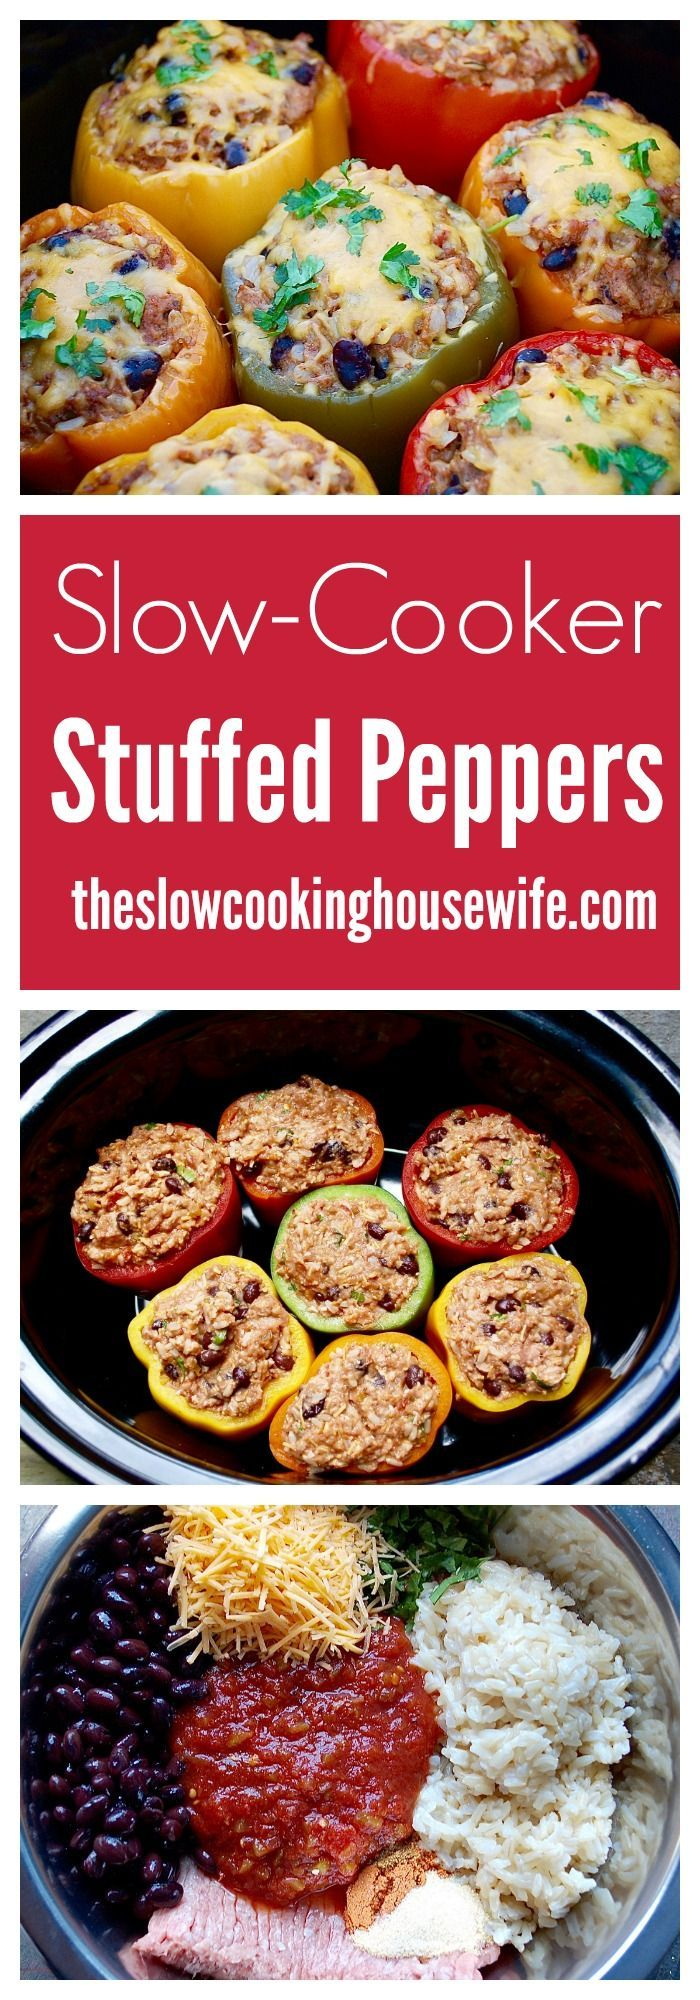 Crock Pot Stuffed Peppers! Easy, delicious, healthy, and packed with protein! So easy and perfect for a low carb keto diet!